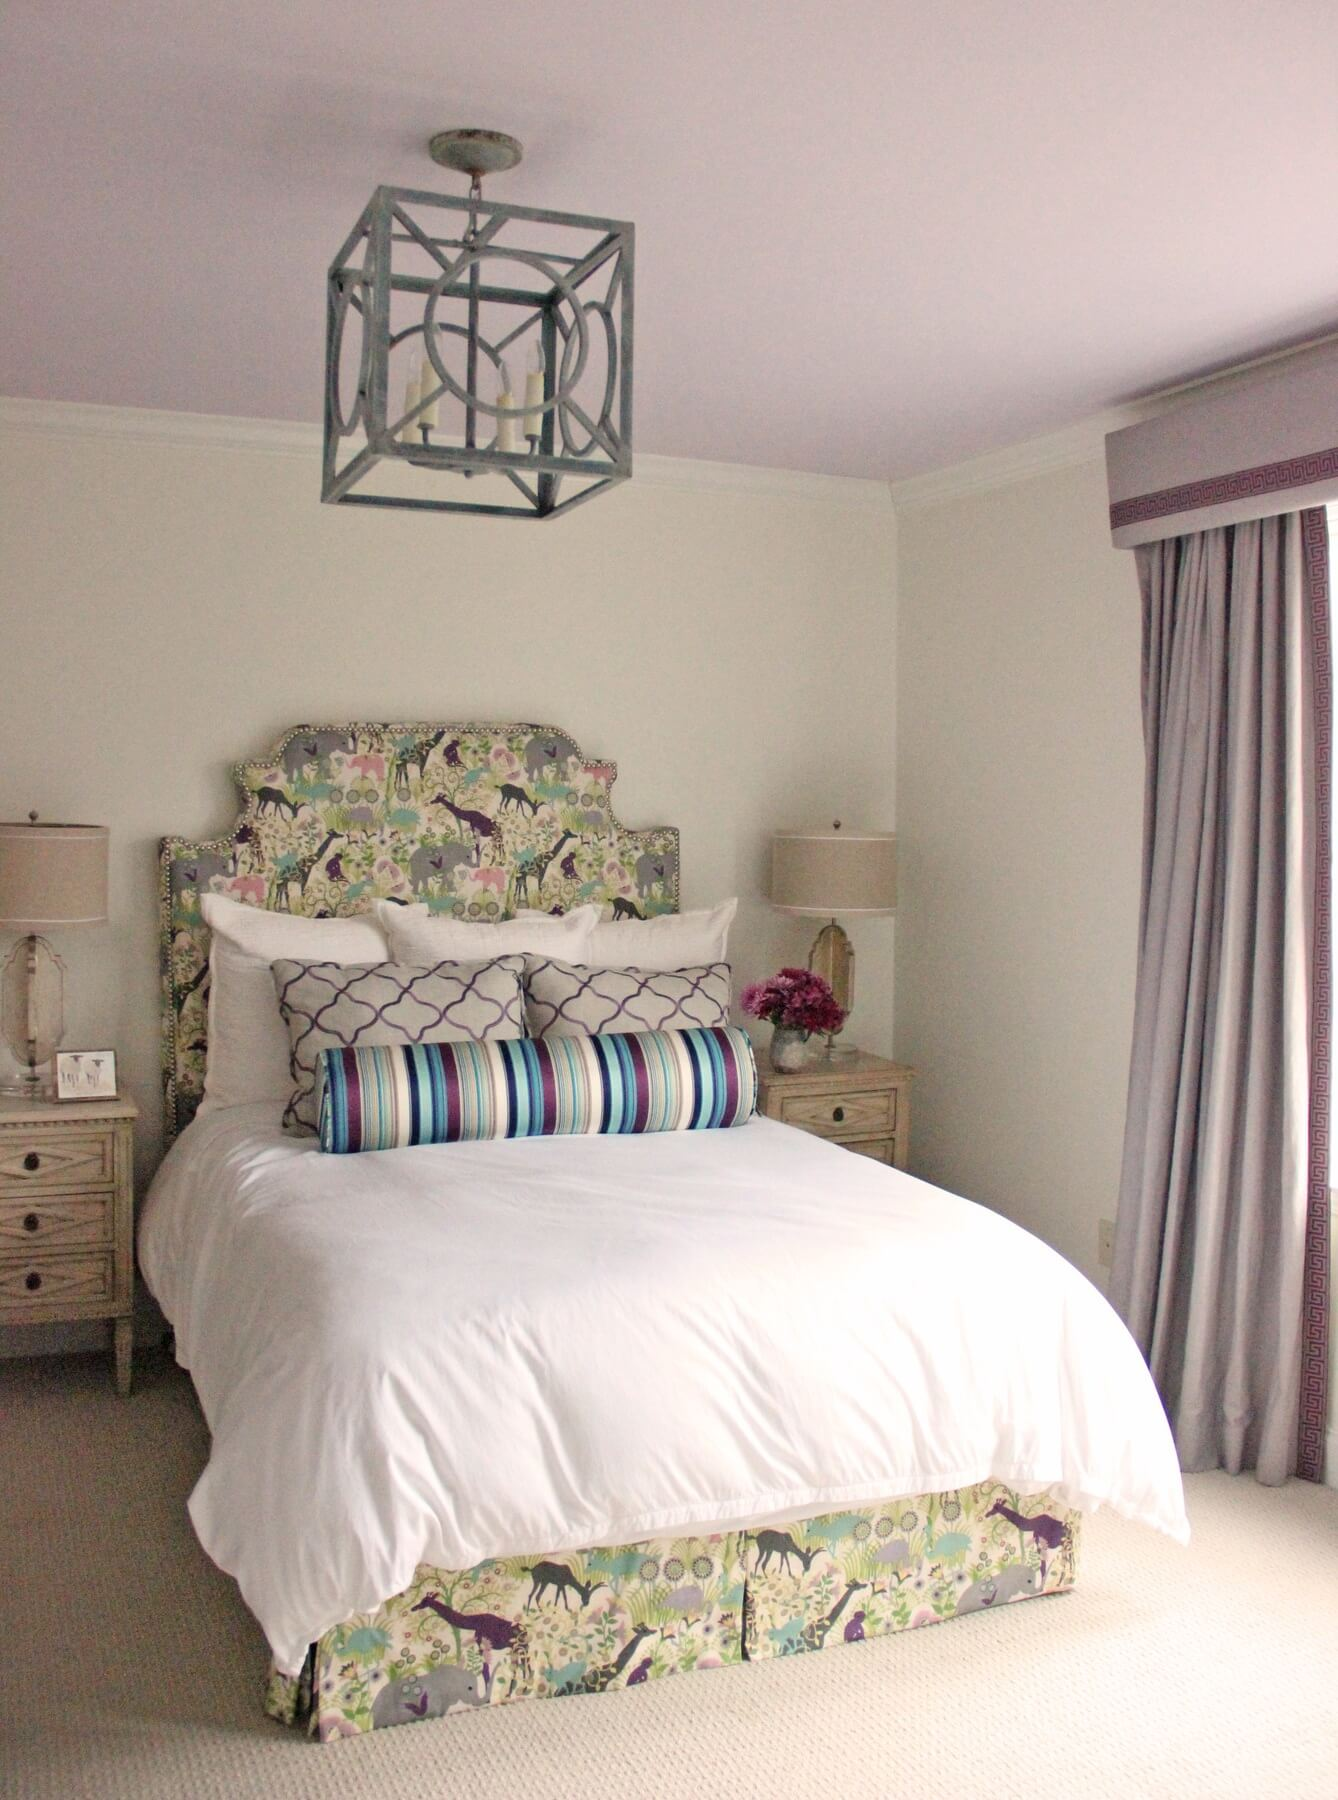 """""""My favorite thing is that the homeowner went with a really fun print on the backsplash and bed skirt,"""" says Marianne of this young girl's room. """"I do feel like kids' rooms should be fun. They are only young once."""" Image: Marianne Strong"""